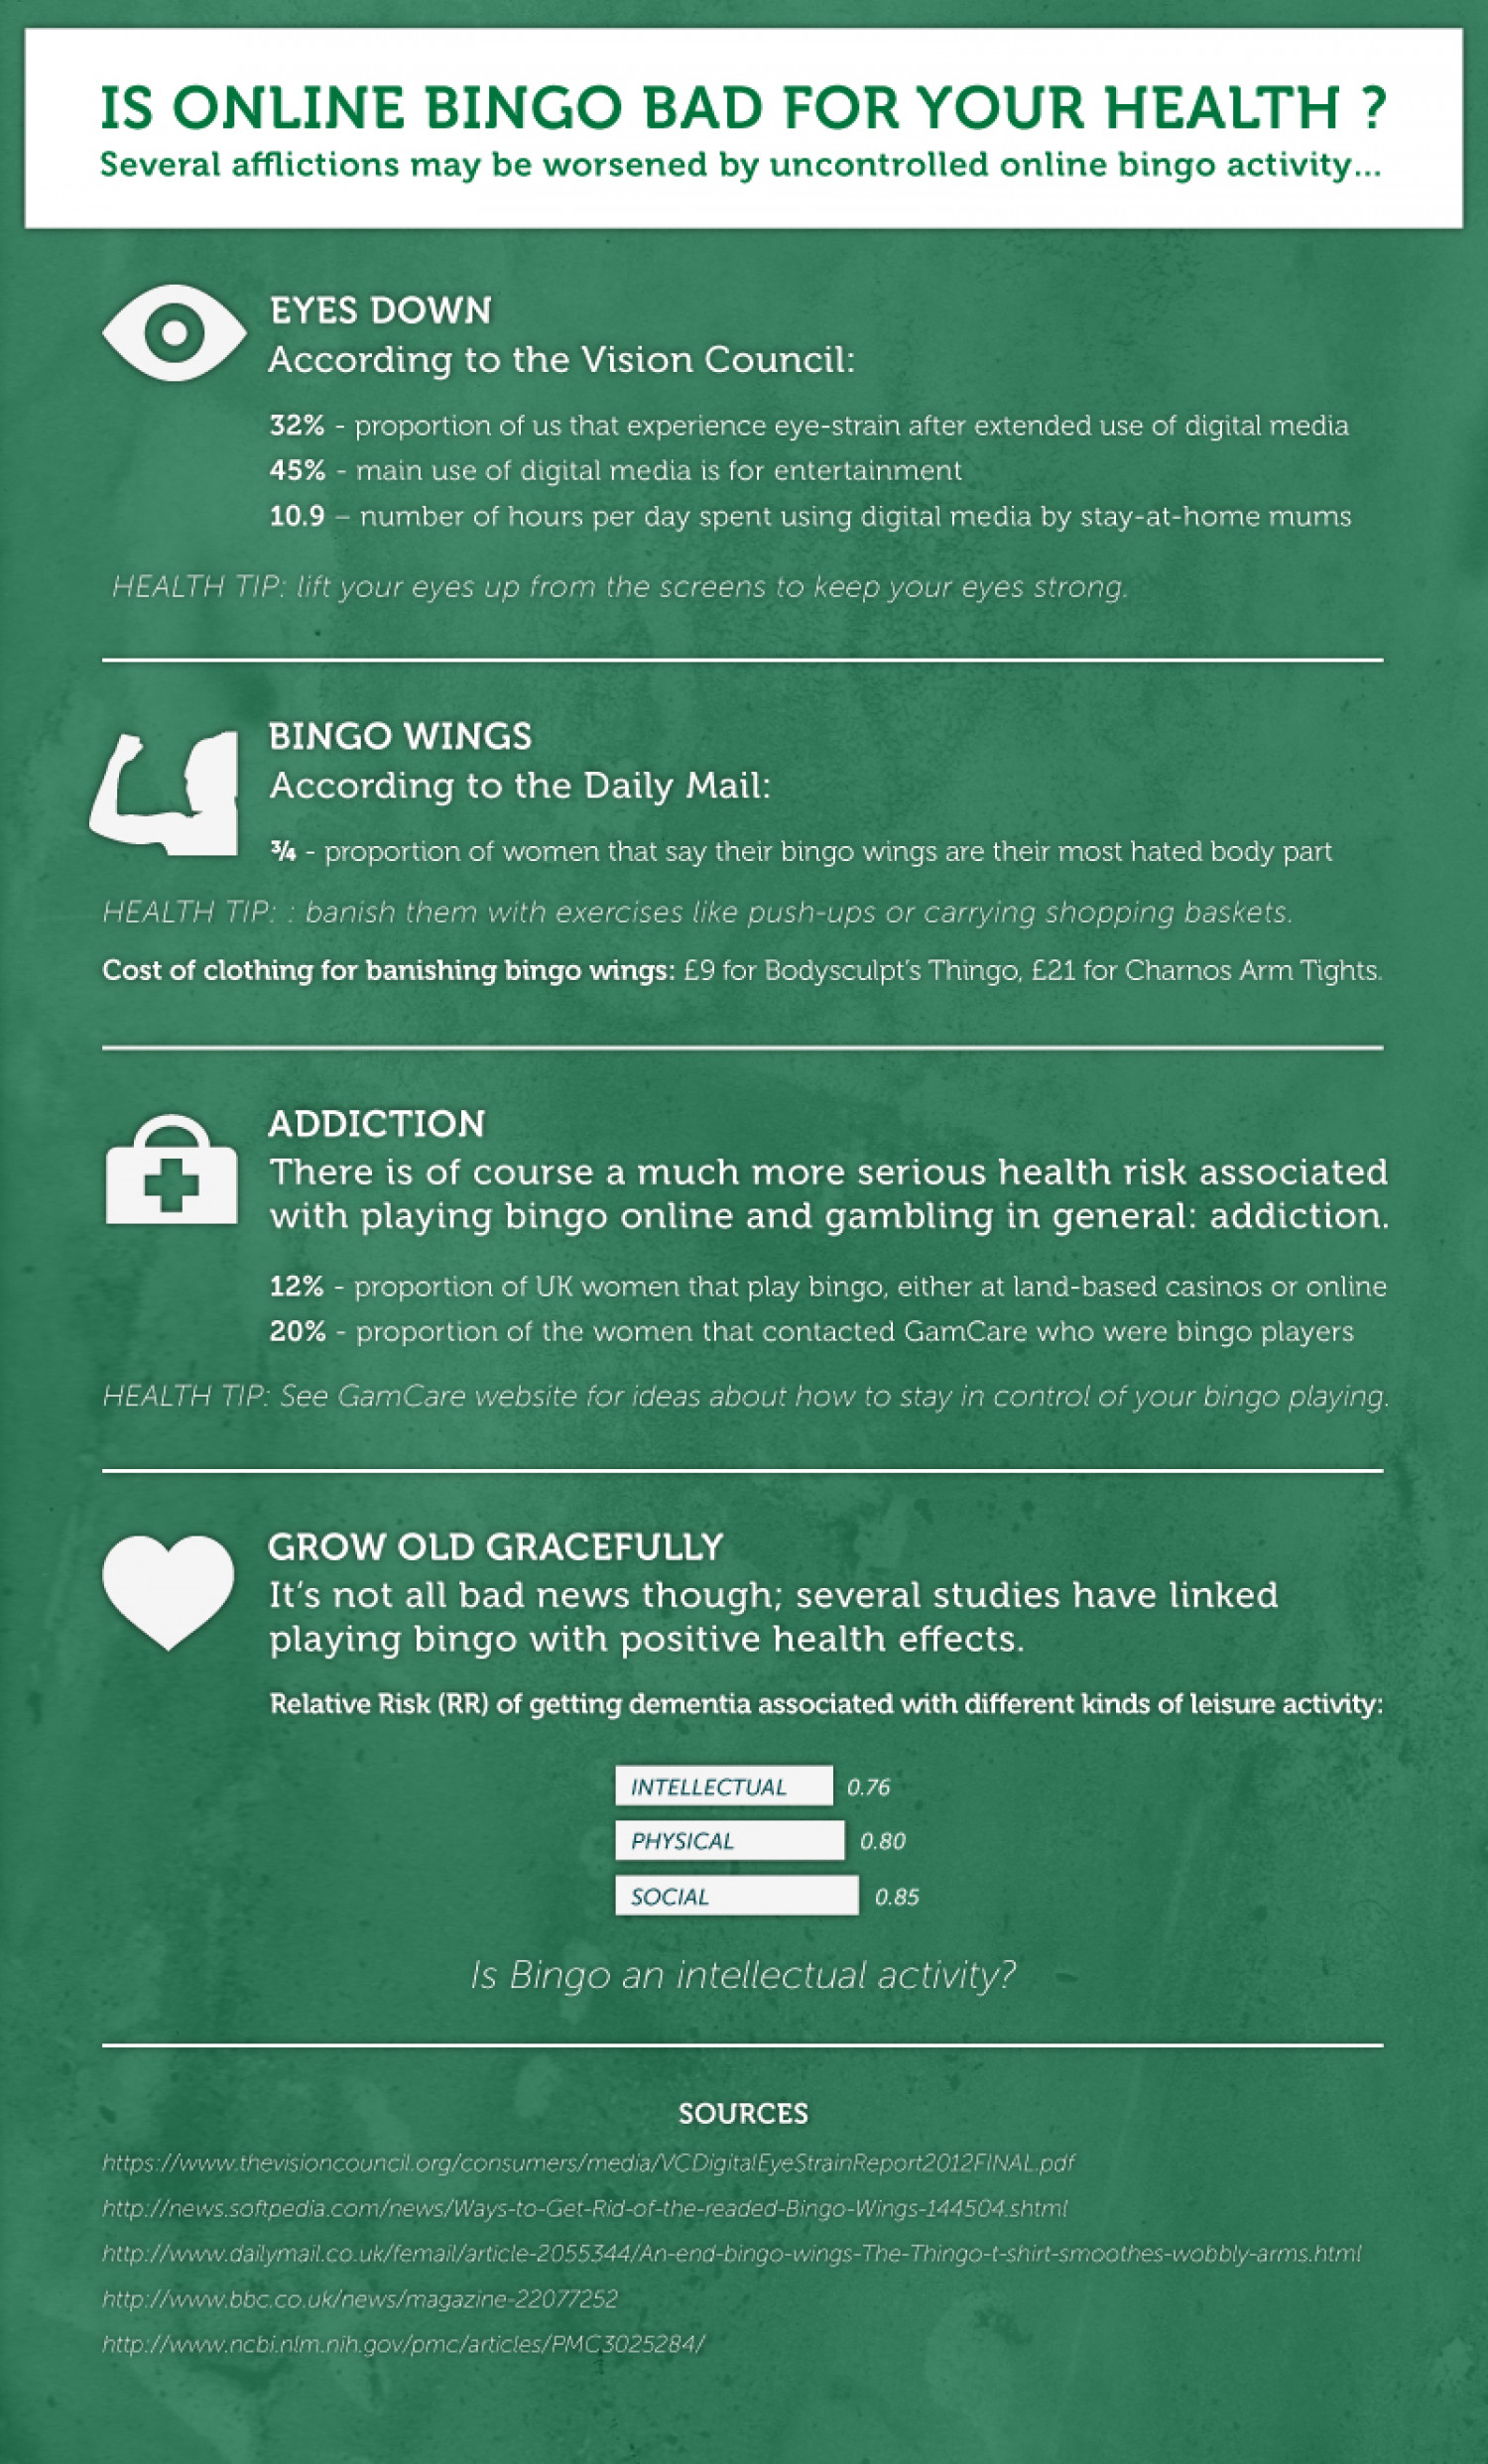 Is online bingo bad for your helath? Infographic